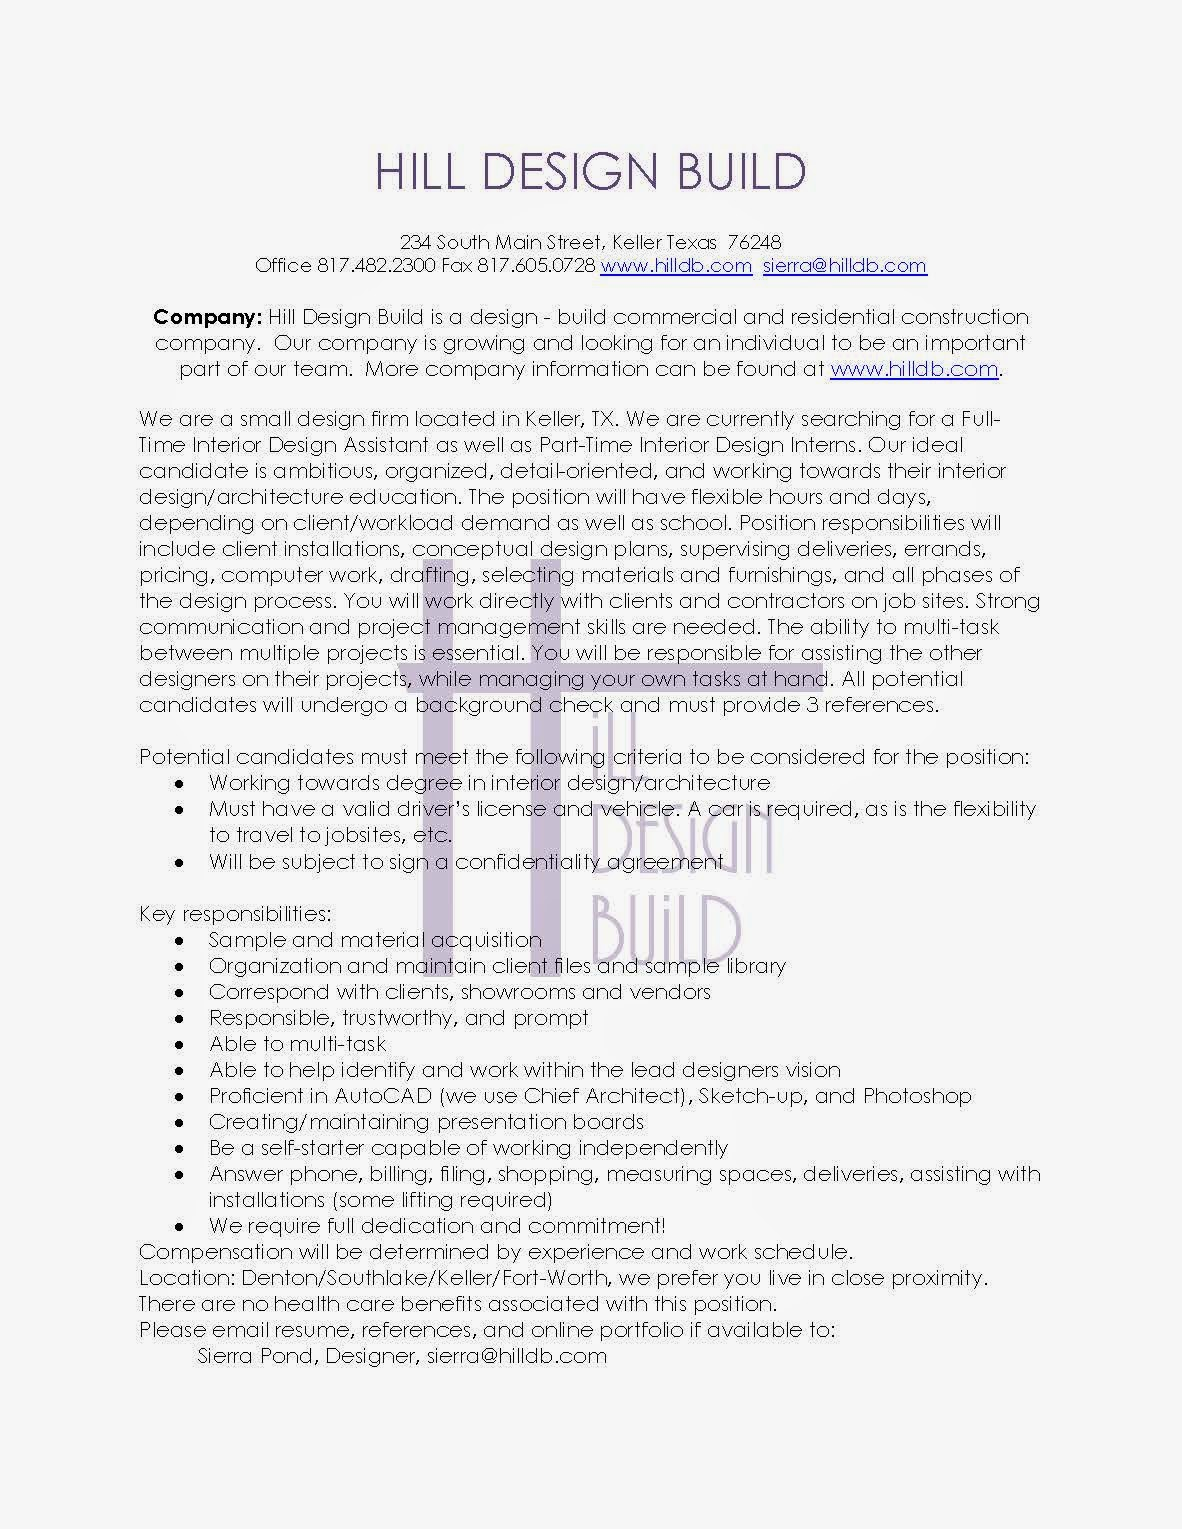 interior design blog  hill design build looking for interior designersthe company is looking for a part time intern as well as full time design assistant  please email resume  references  and online portfolio if available to